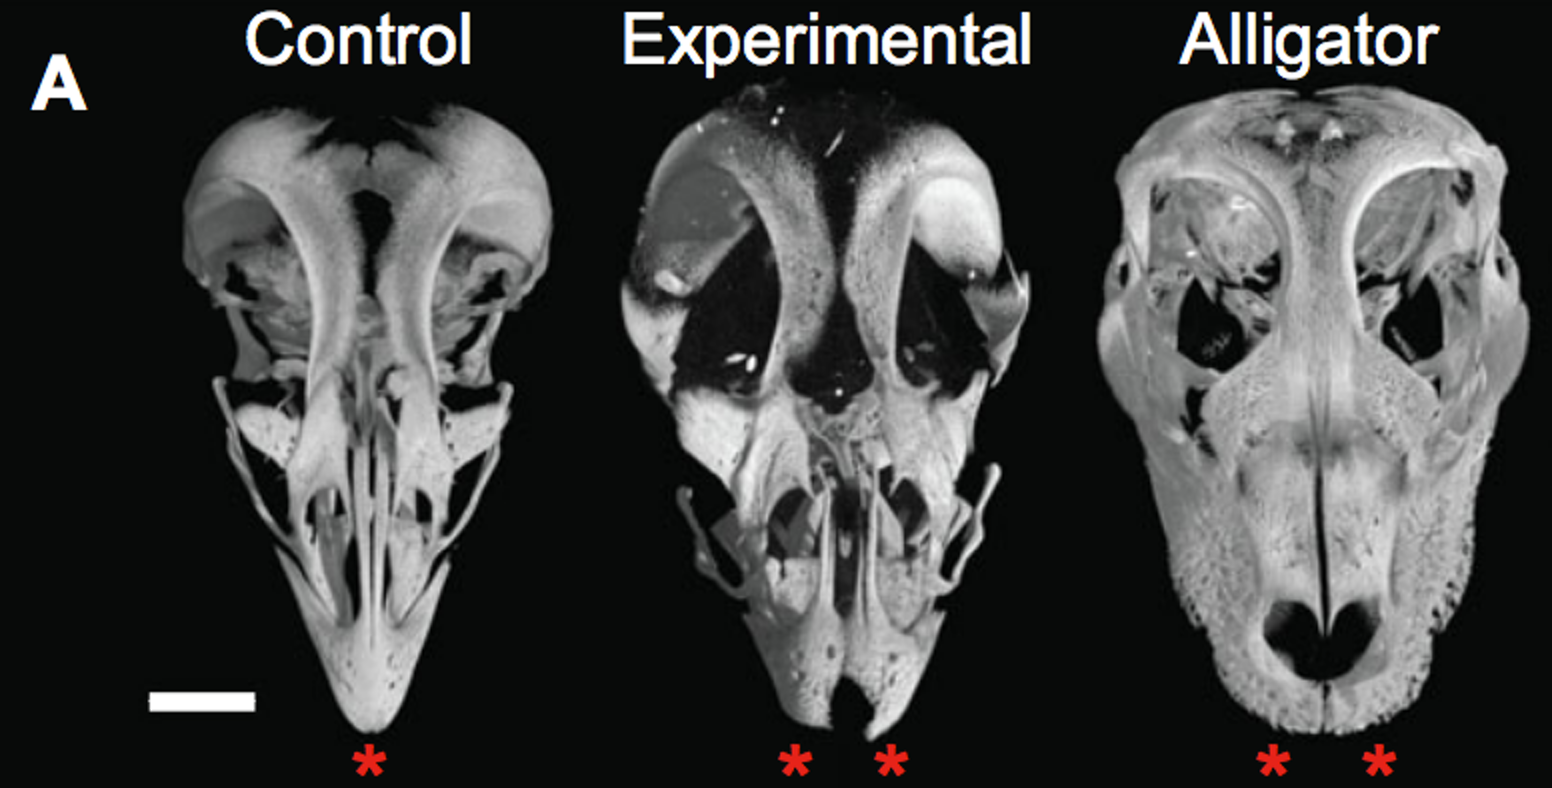 Imaged skulls of a chicken, Bhullar et al.'s experimental chicken, and an alligator.